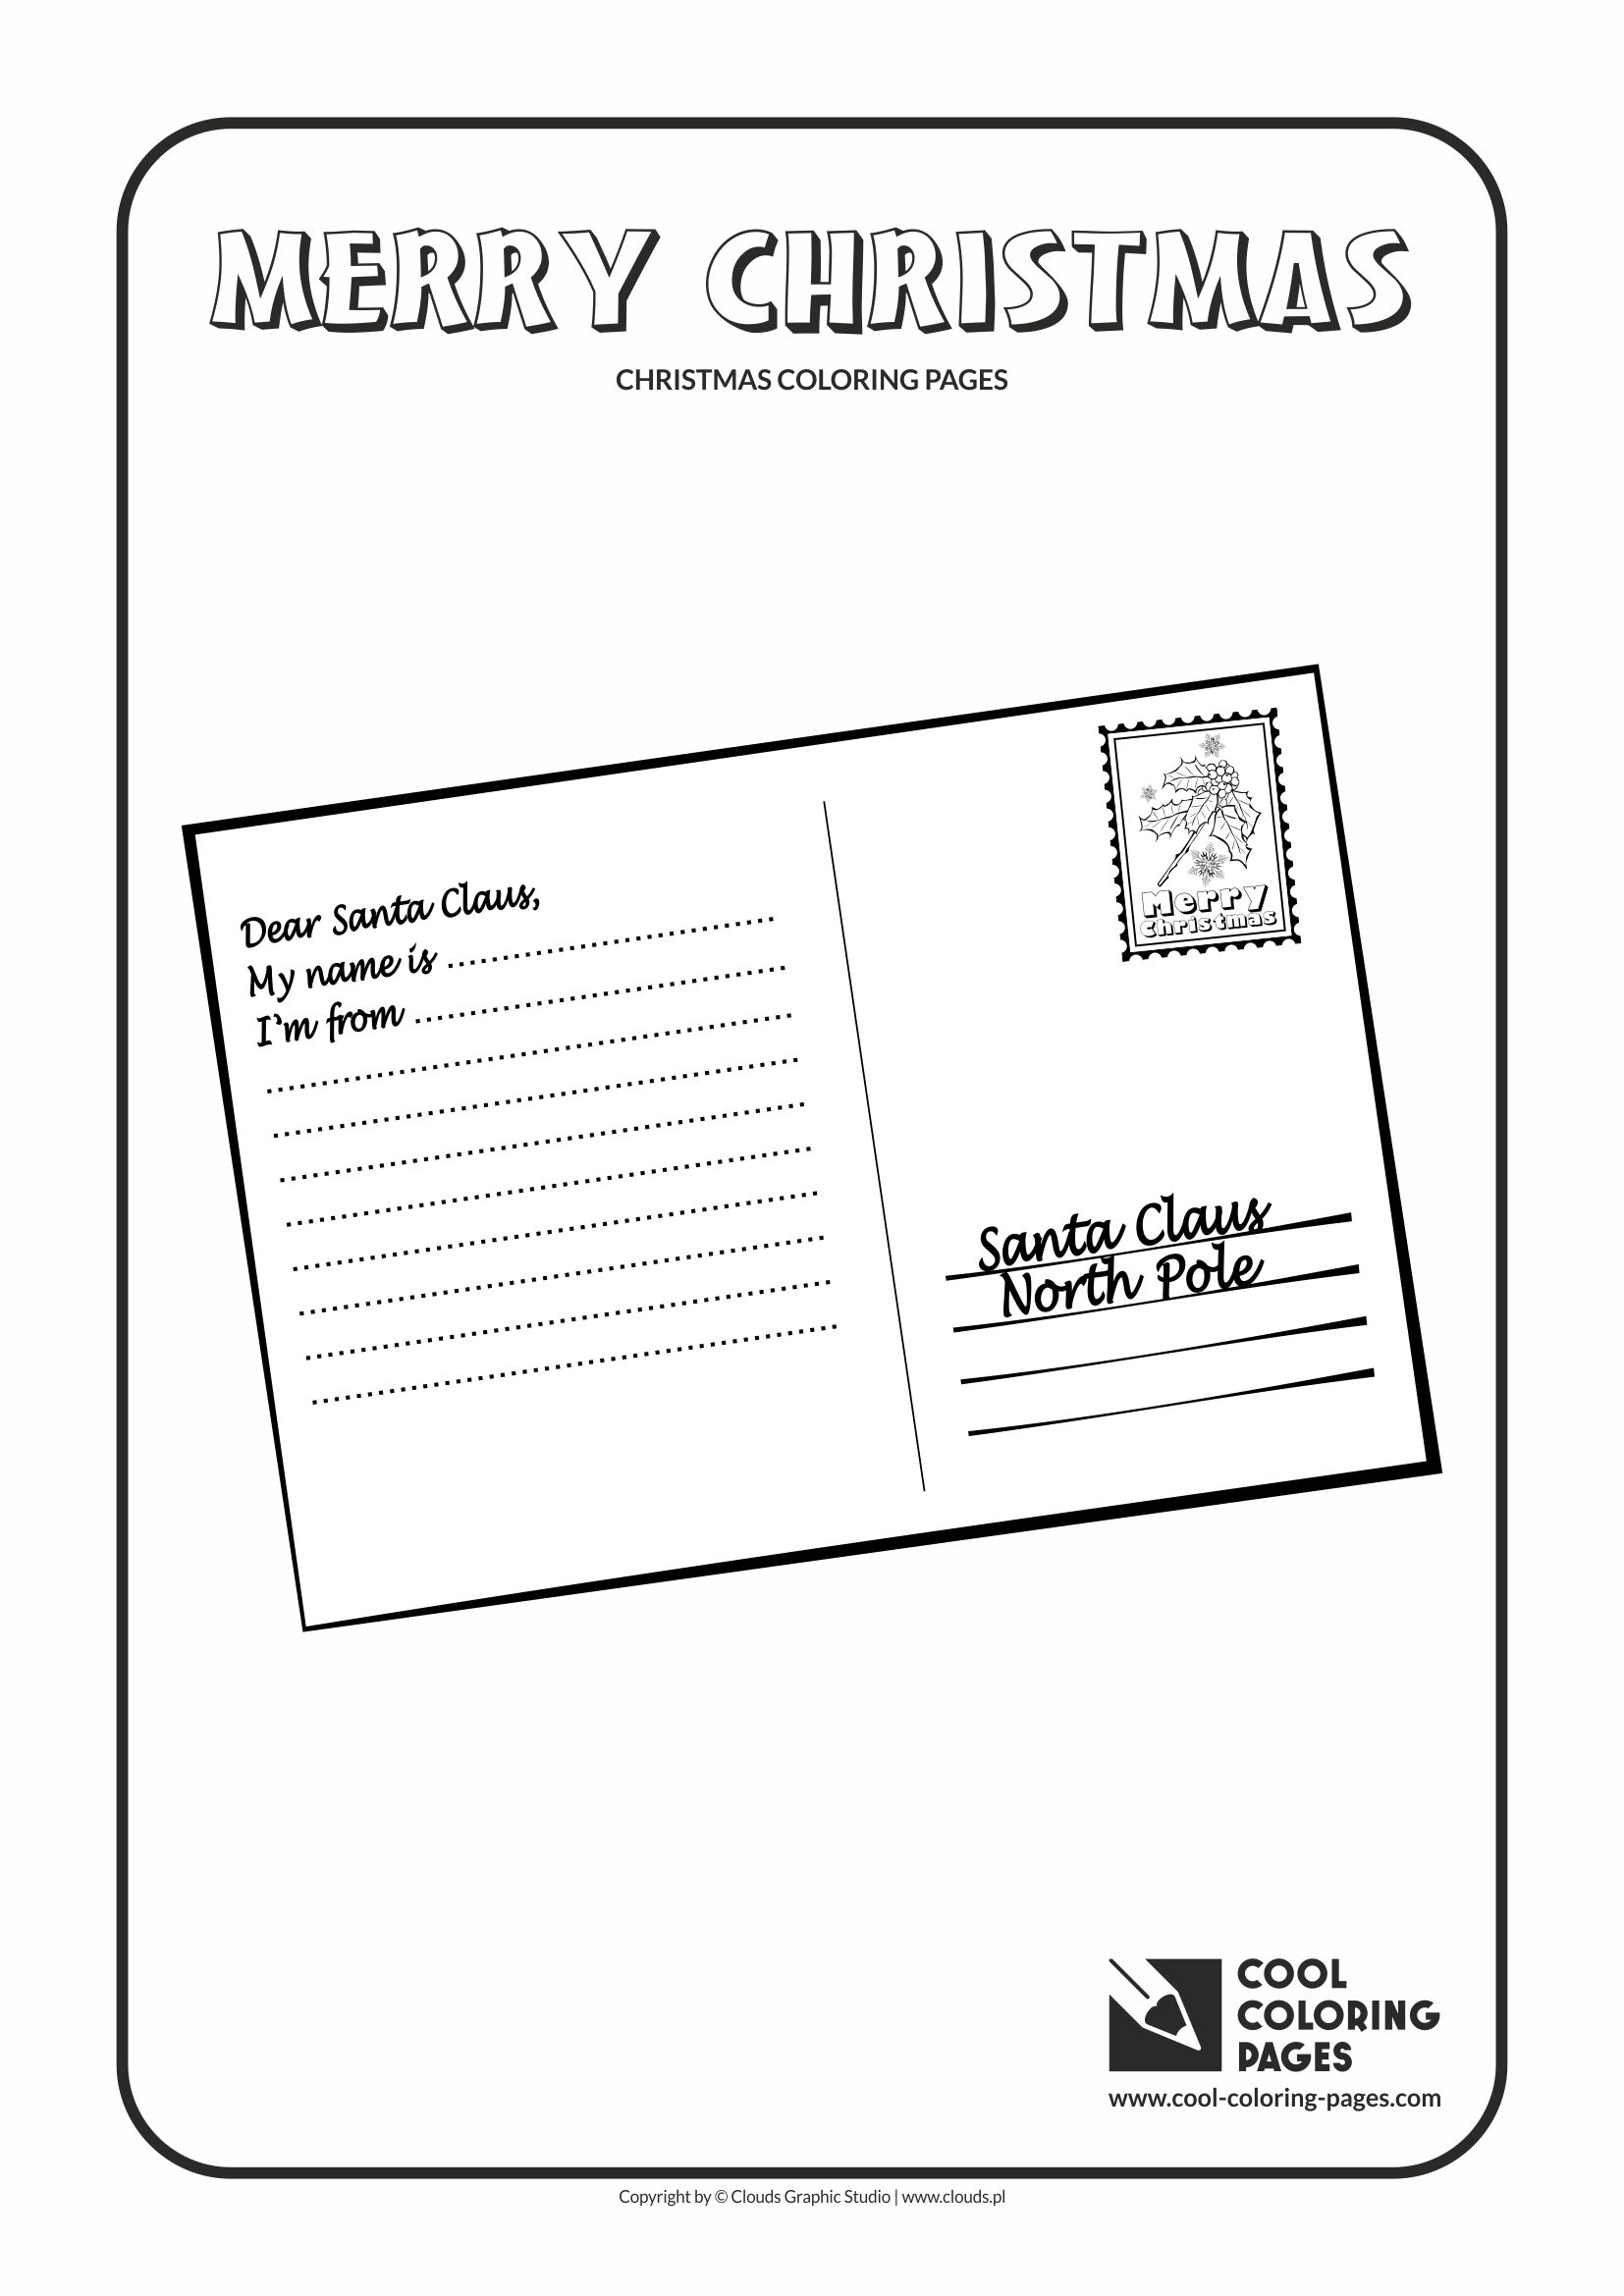 Cool coloring pages christmas coloring pages cool for Postcard template for pages